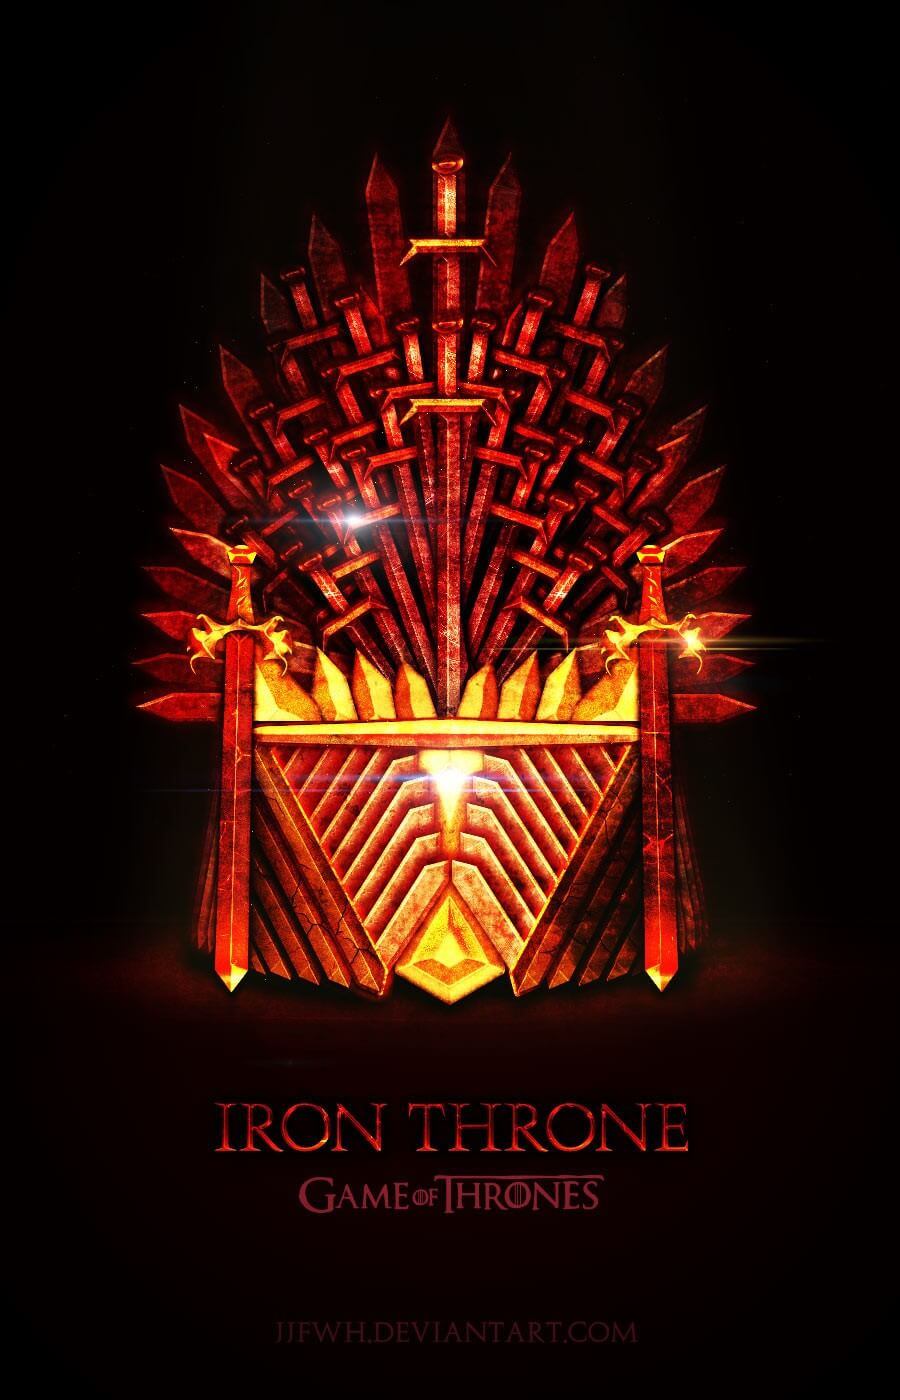 game of thrones wallpaper 4k